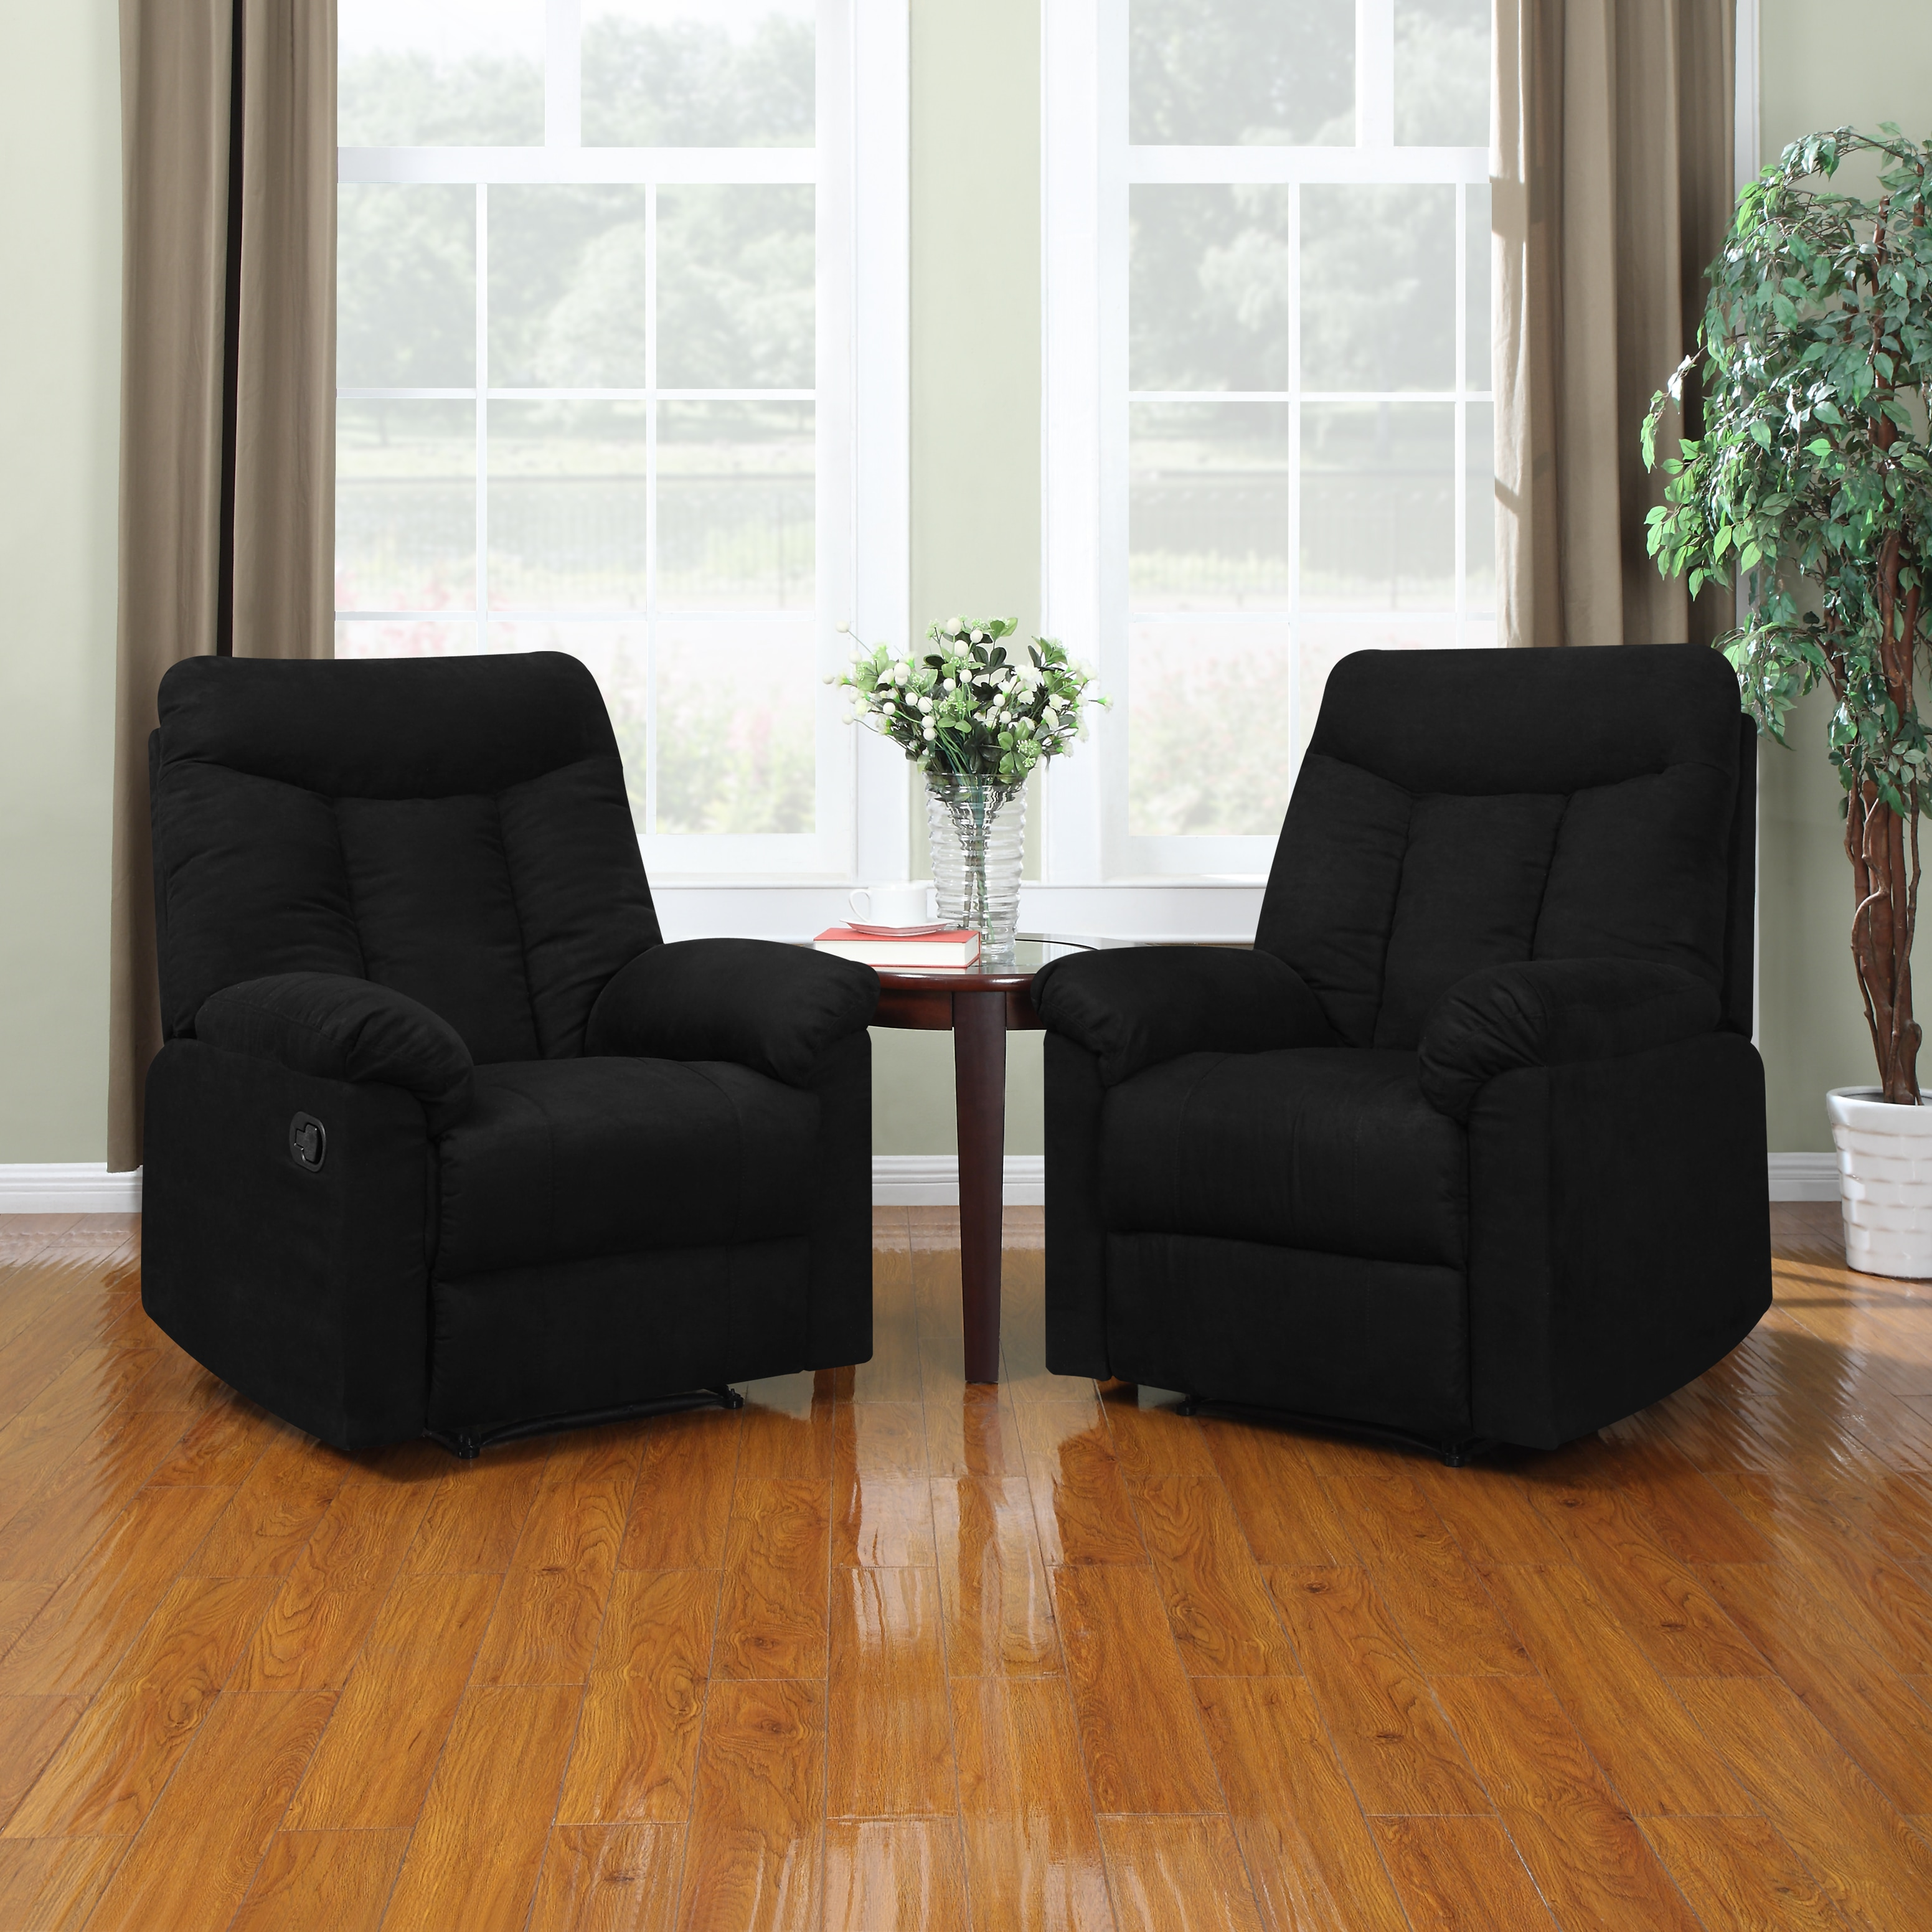 Portfolio ProLounger Wall Hugger Black Microfiber Recliners (Set of 2) at Sears.com